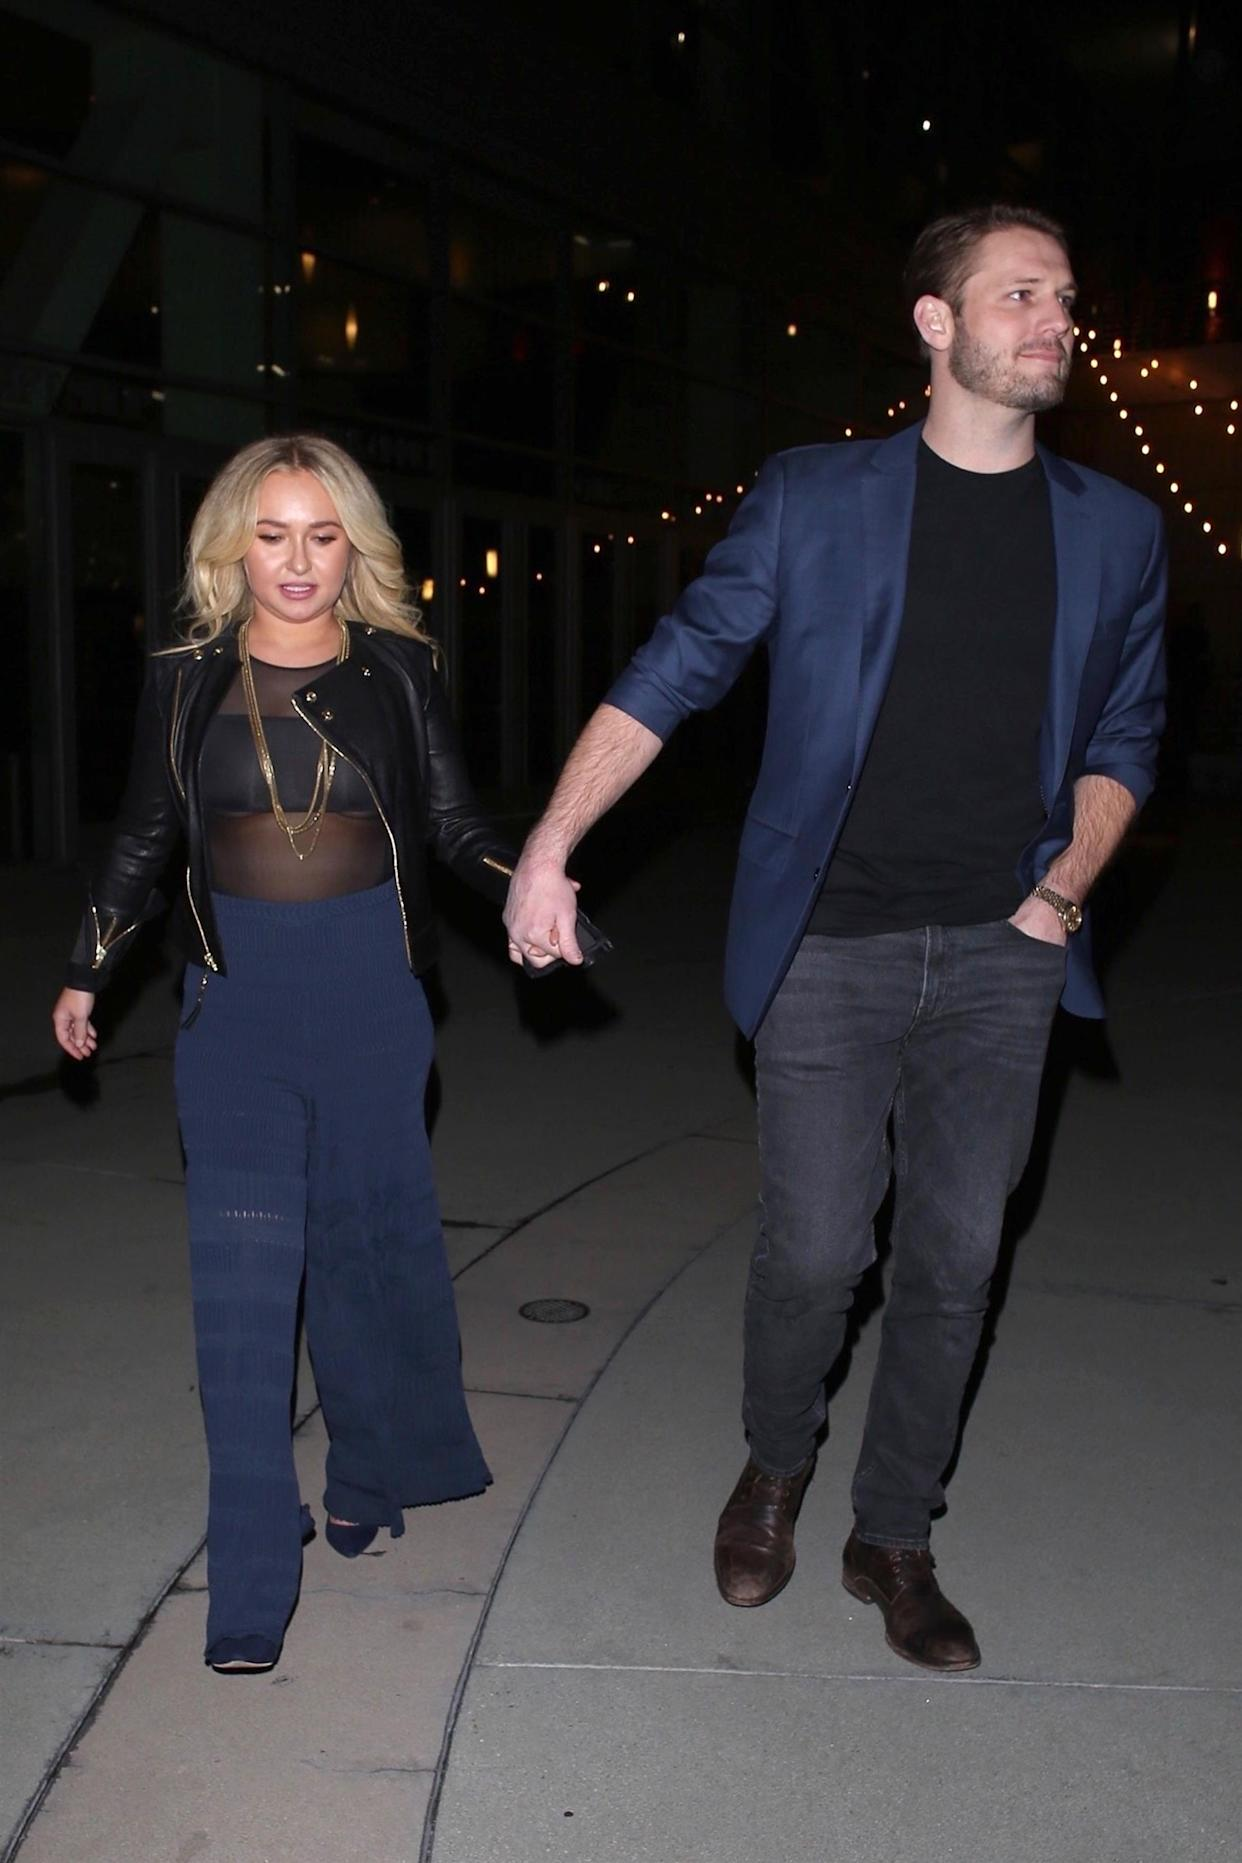 Hayden Panettiere and Brian Hickerson in January 2019. (Photo: BACKGRID)